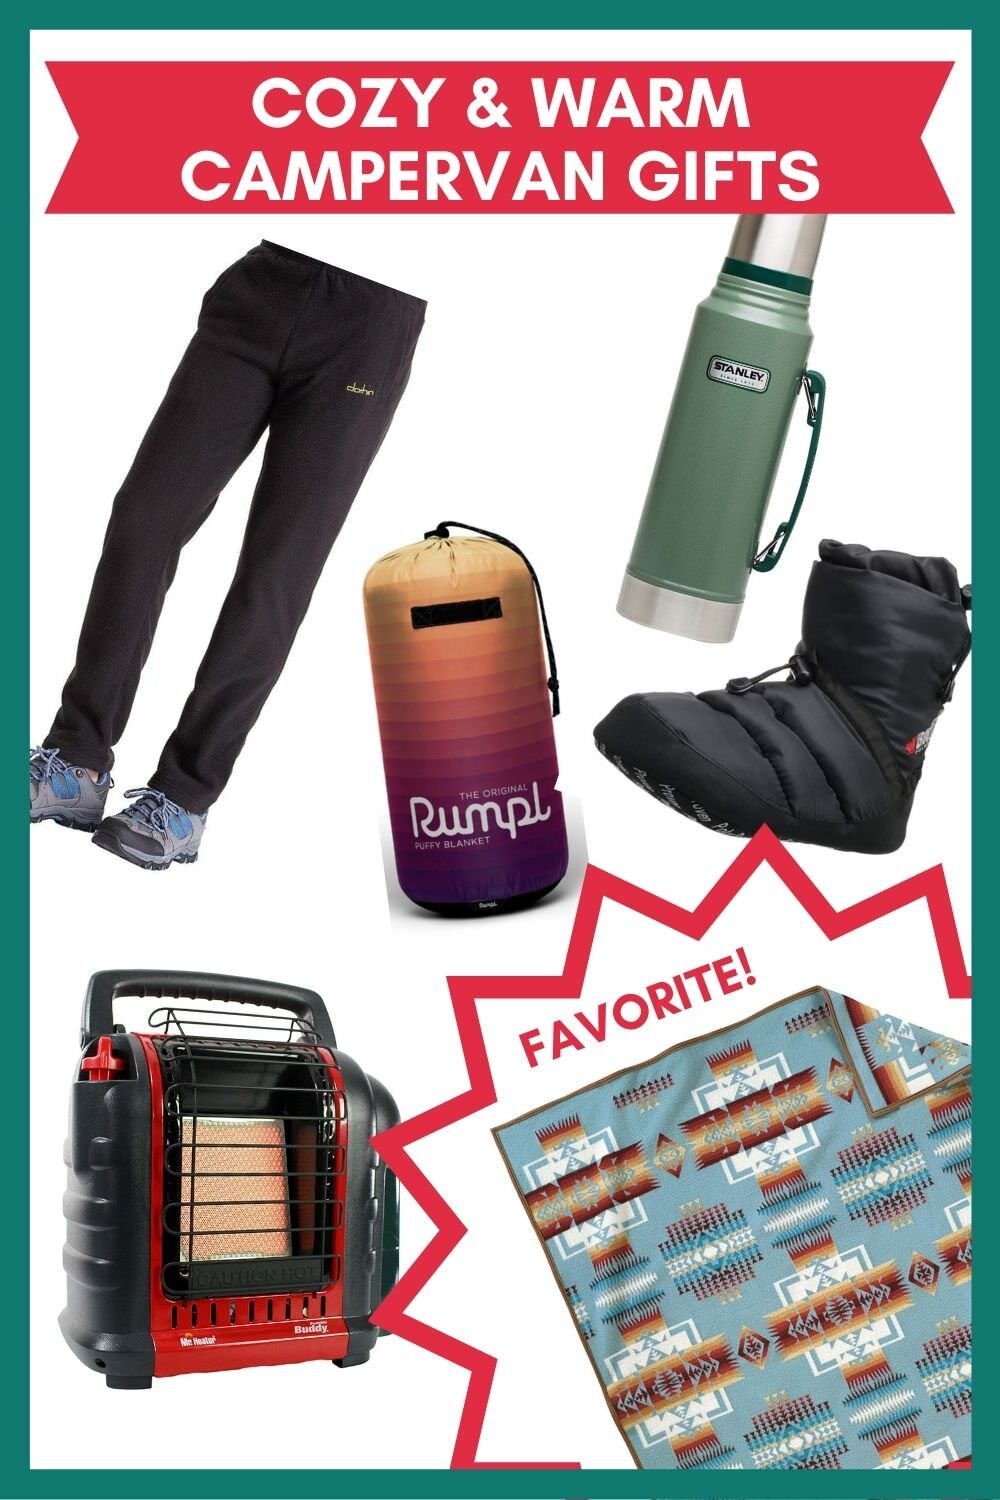 Cozy and Warm campervan accessories gift ideas.